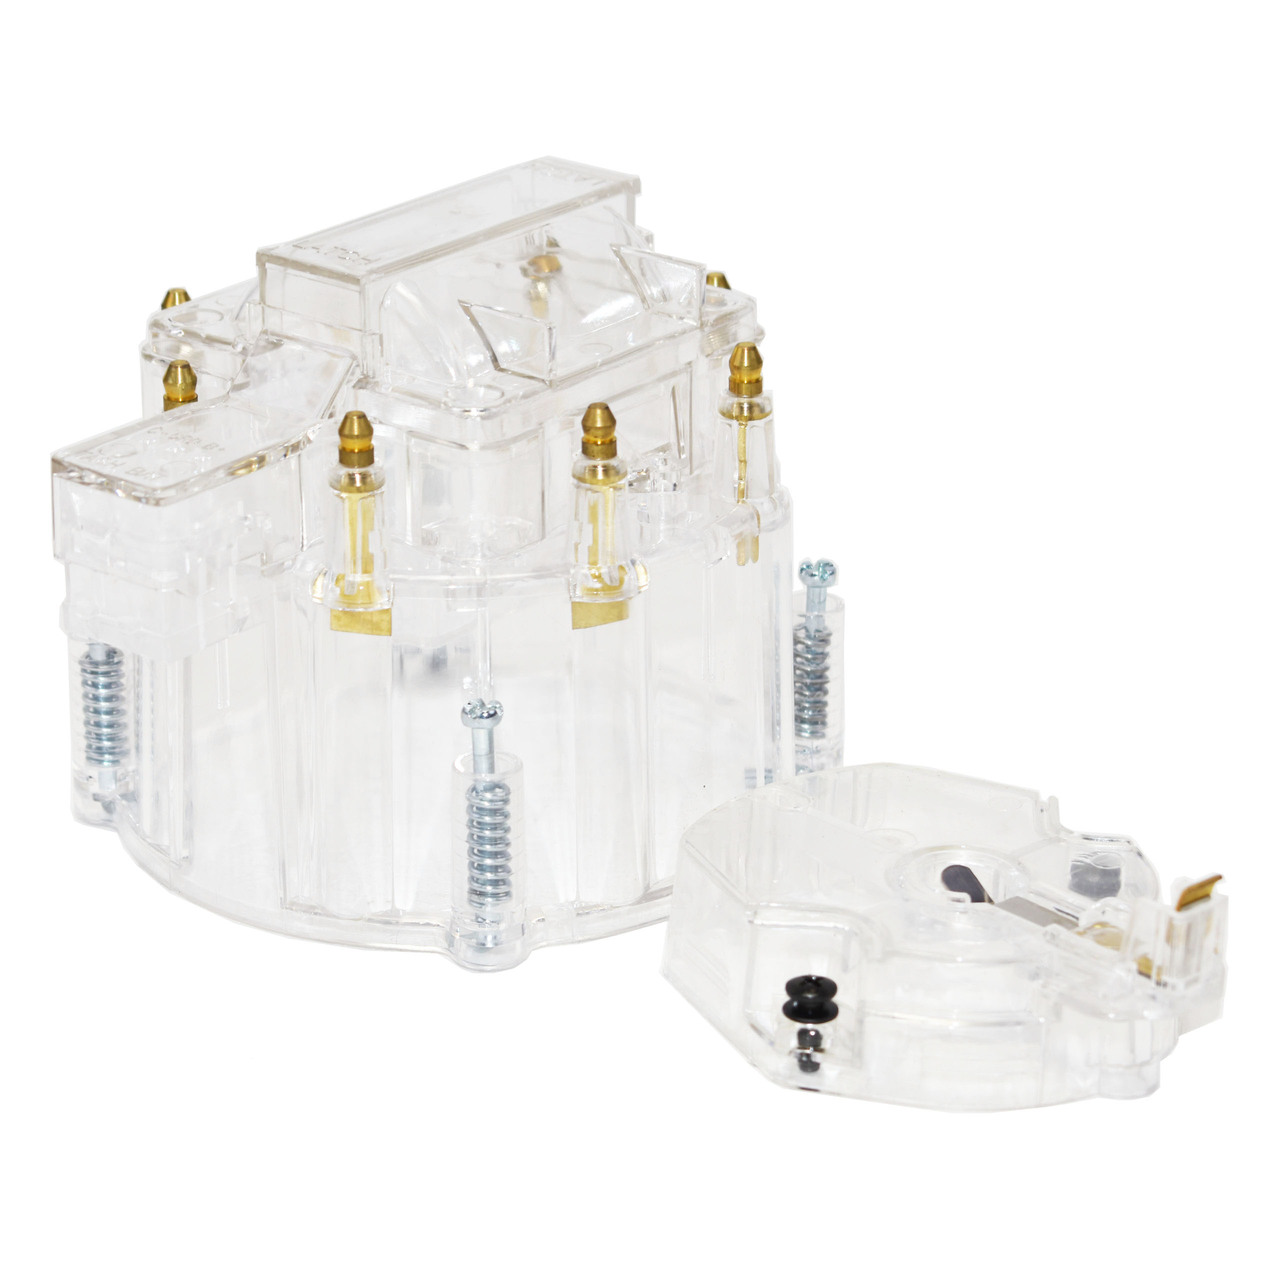 A-Team Performance HEI OEM Distributor Cap, Rotor and Coil Cover Kit 8-cylinder Compatible with Small Block SBC Big Block BBC Chevy Chevrolet Clear